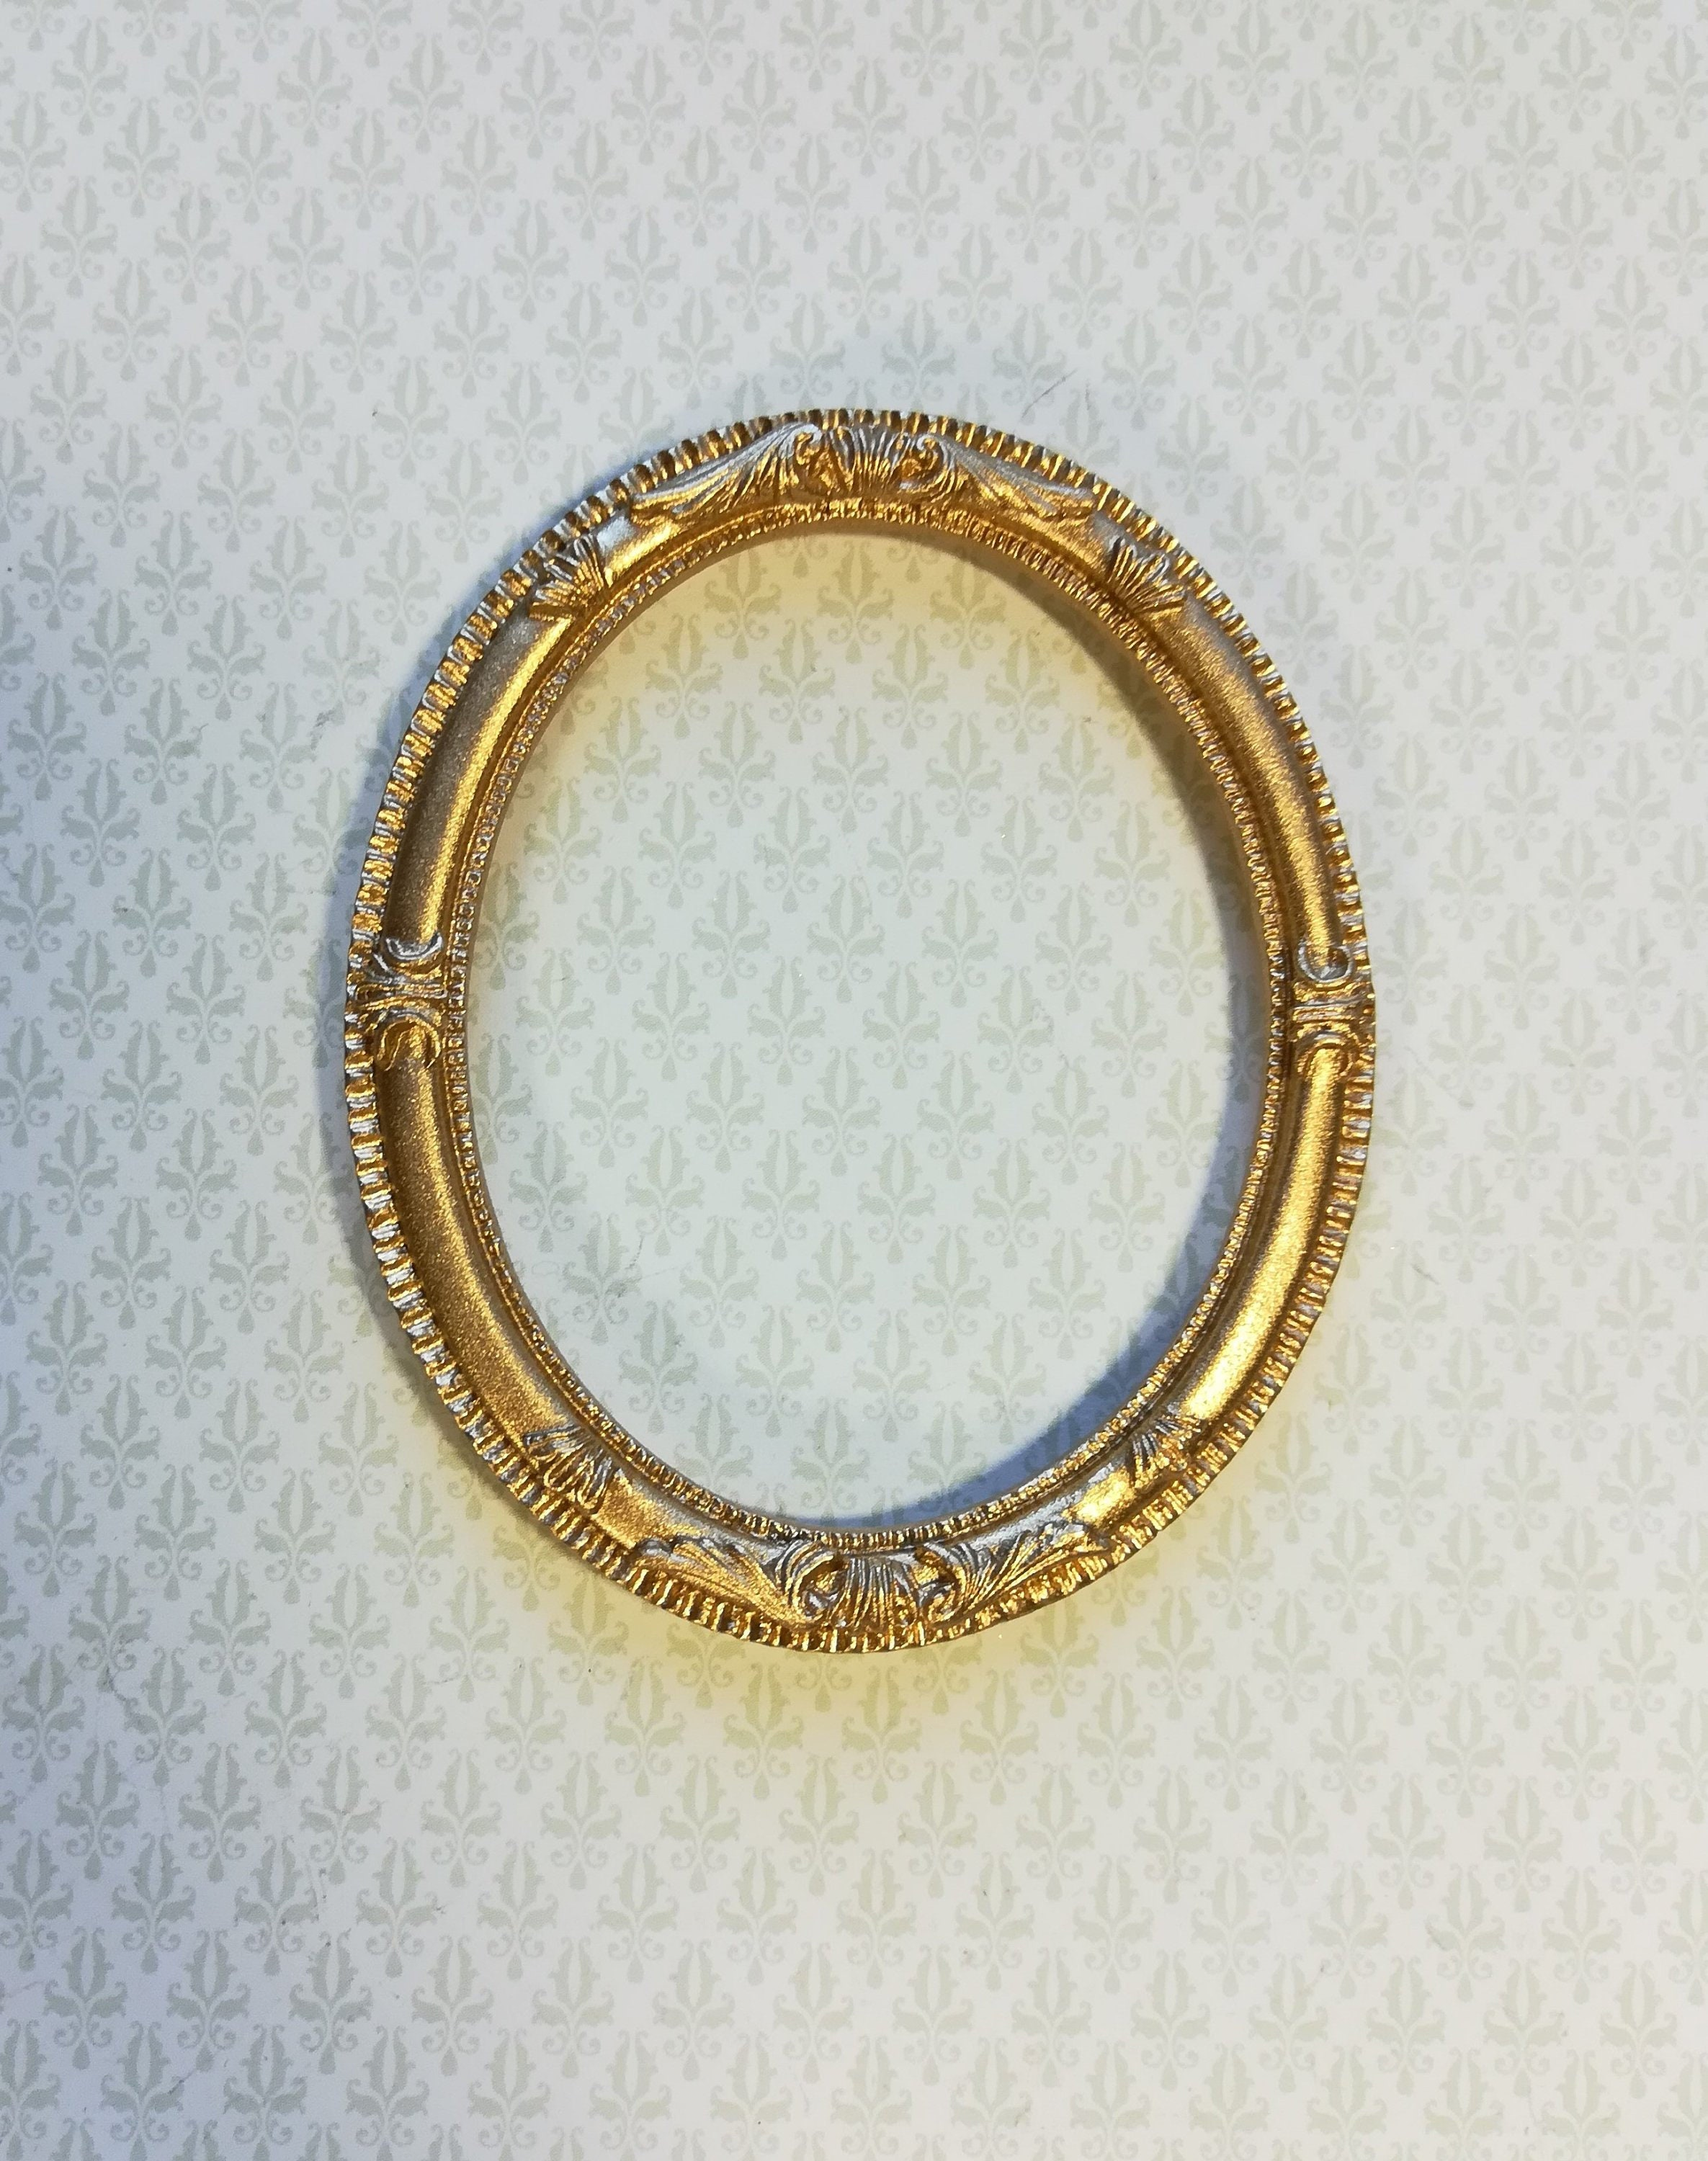 8c140e9367e Dollhouse Miniature Large Ornate Oval Gold Picture Frame For